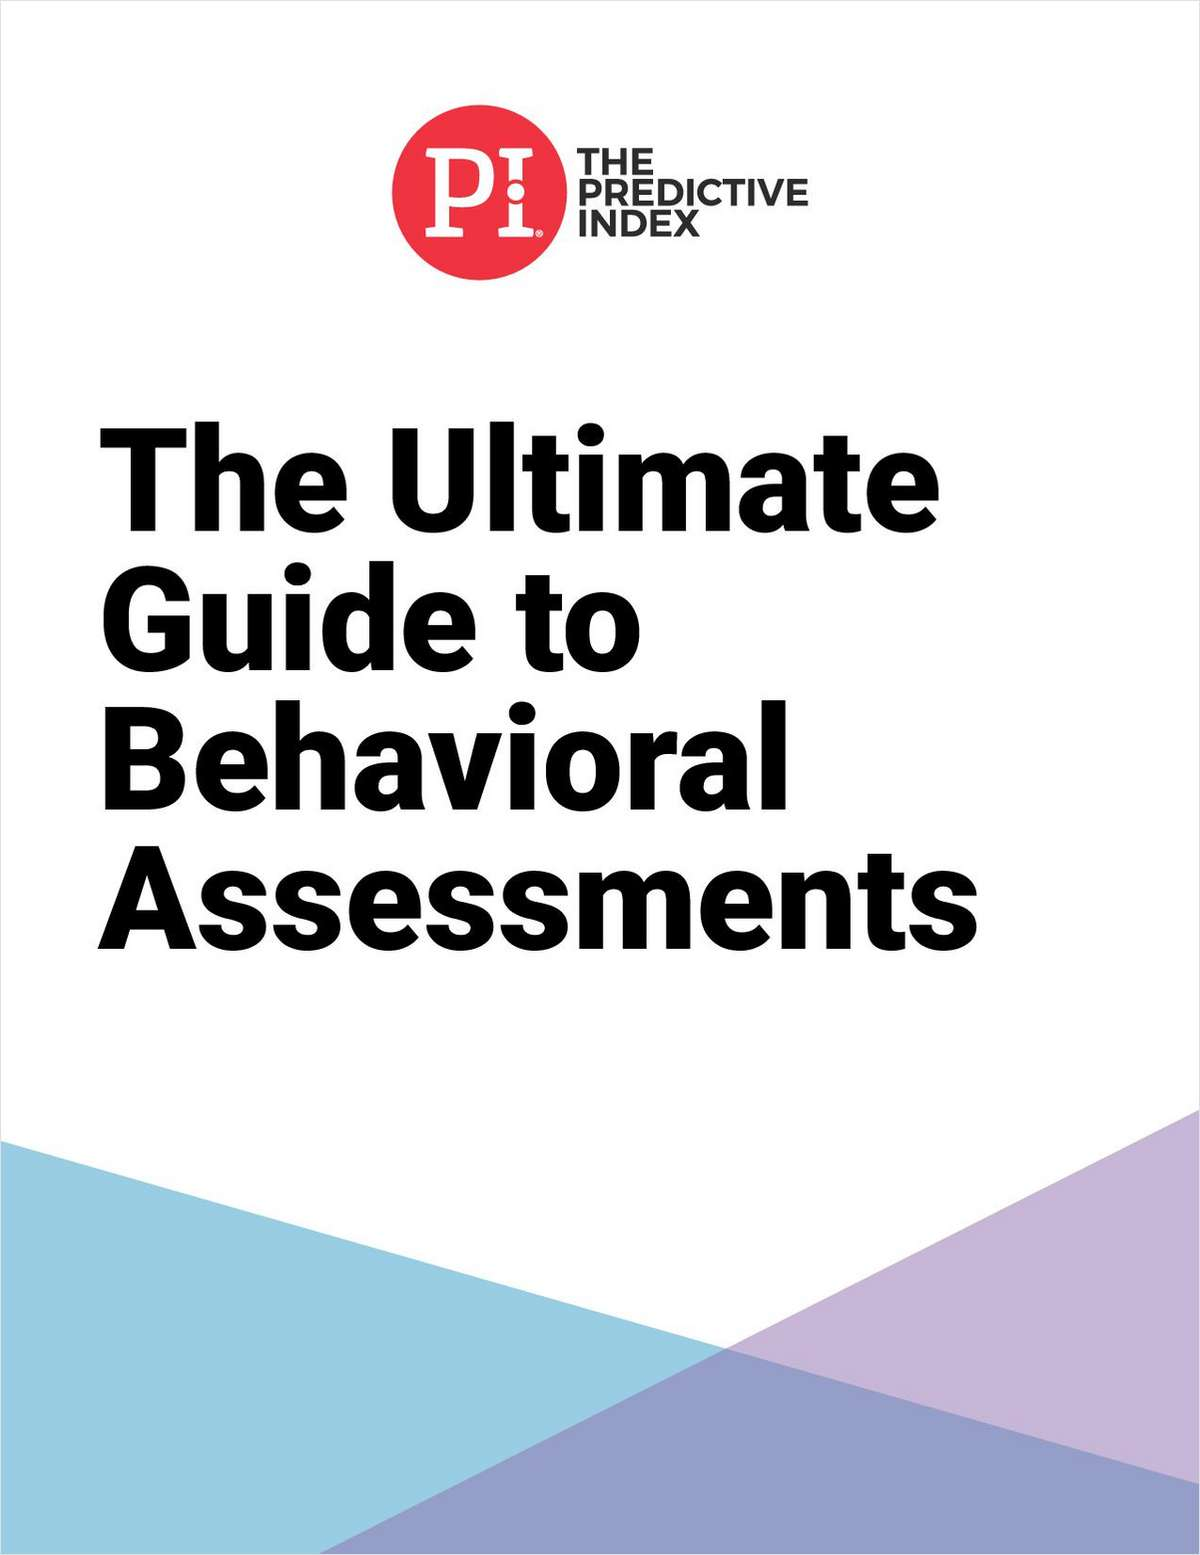 The Ultimate Guide to Behavioral Assessments